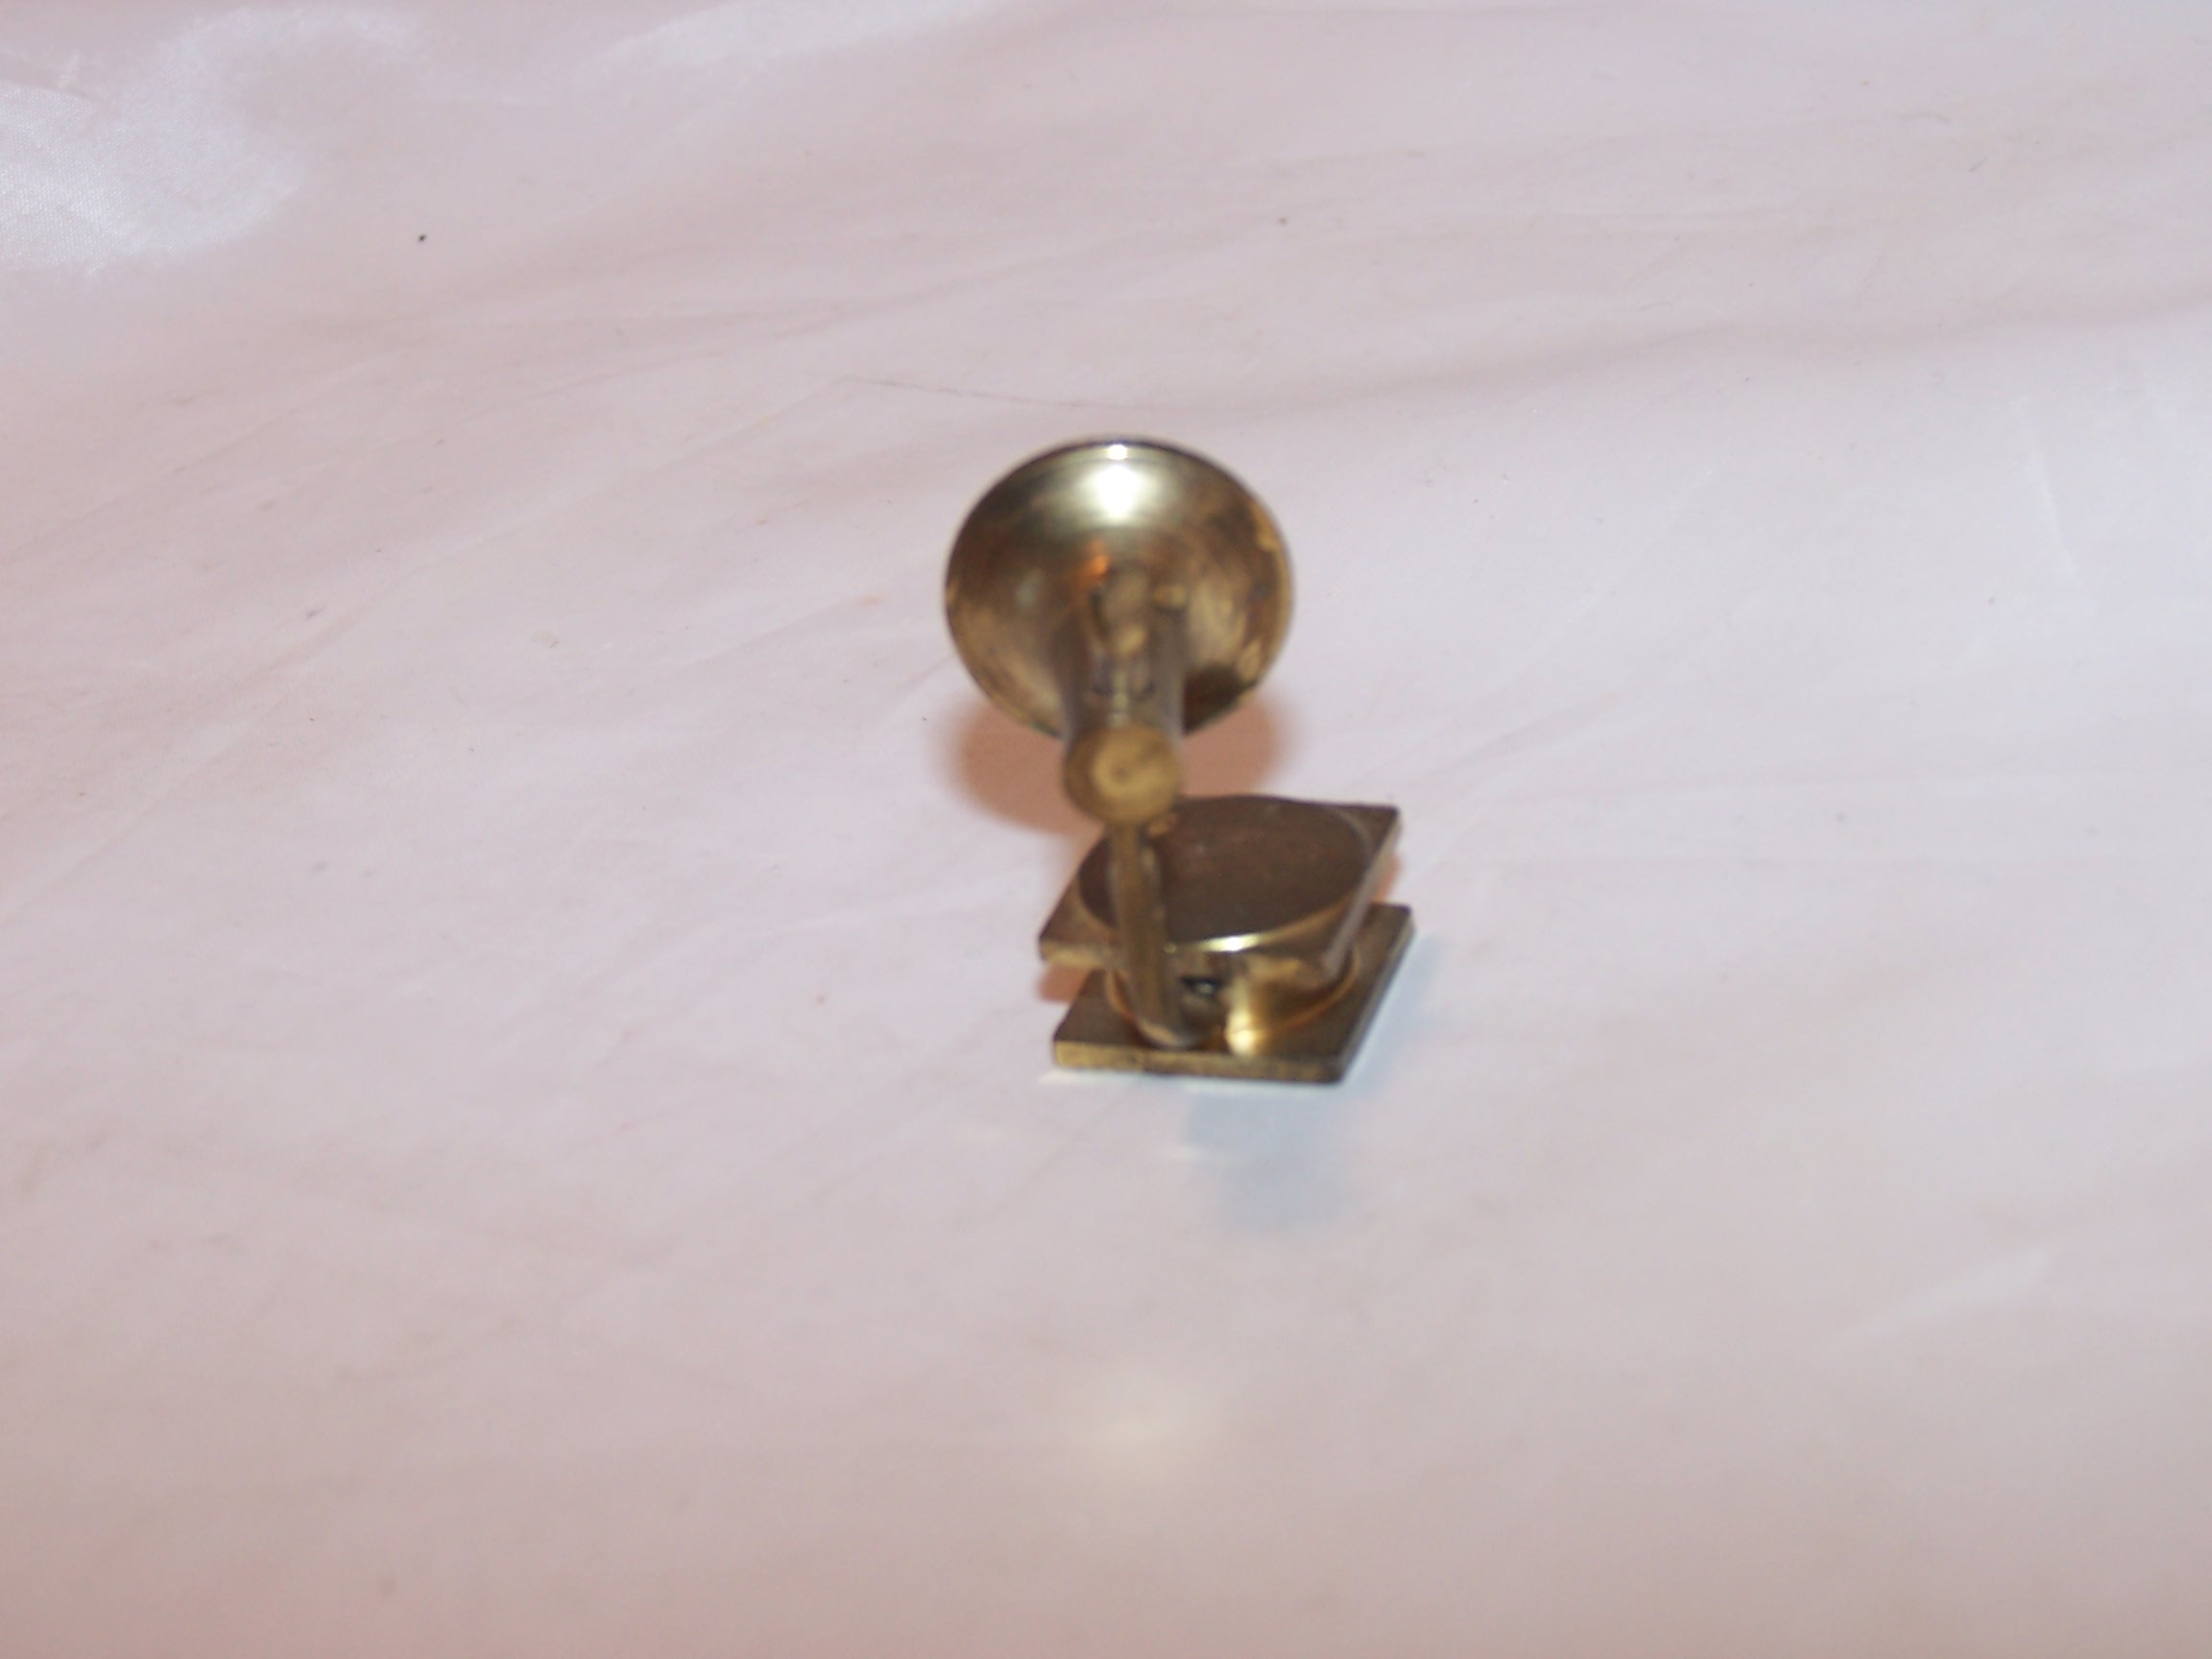 Image 1 of Dollhouse Brass Victrola Record Player, Miniature